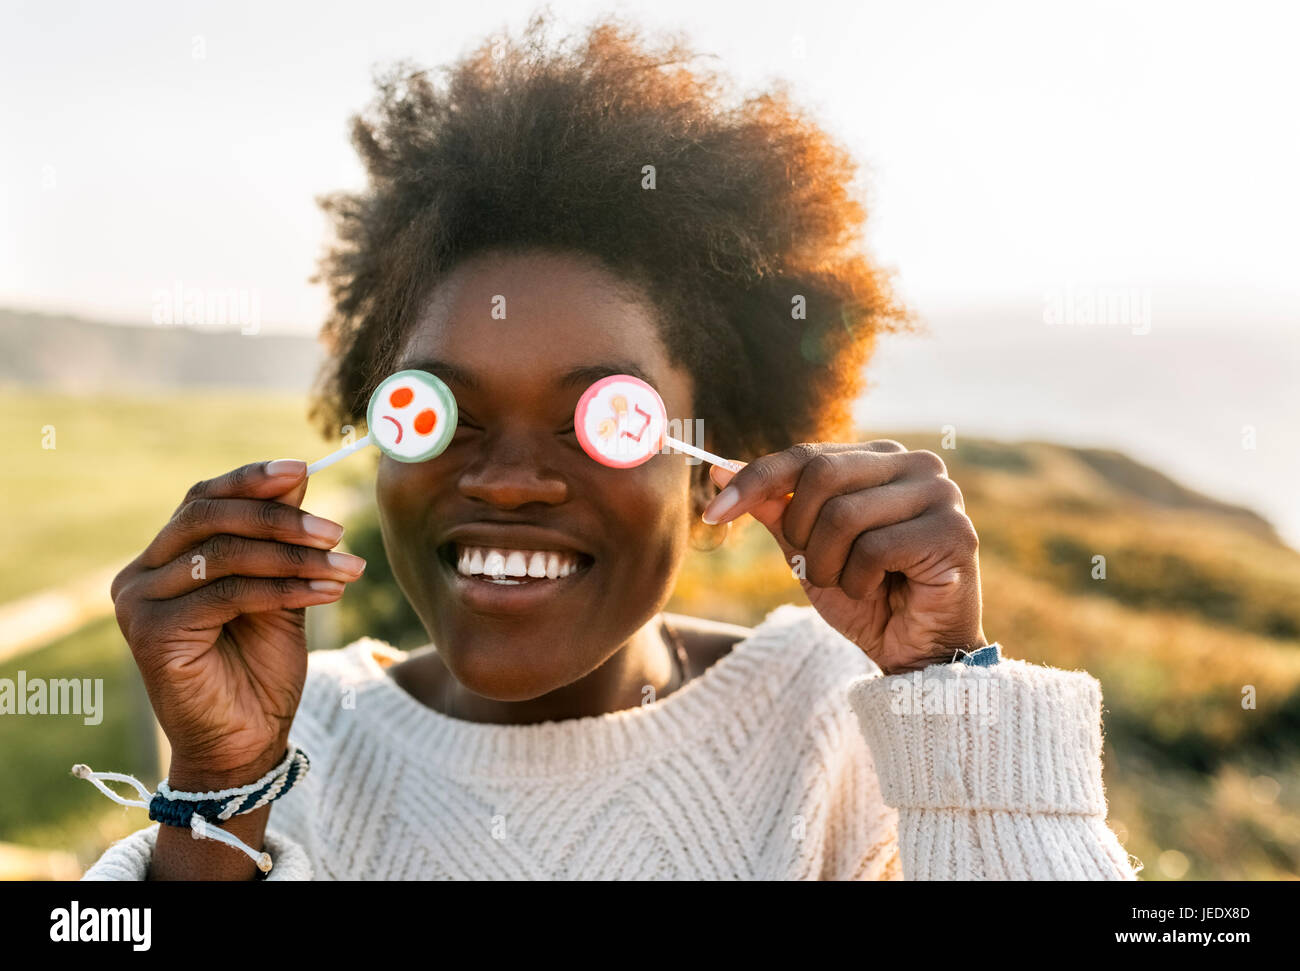 Young woman having fun with lollipops Photo Stock